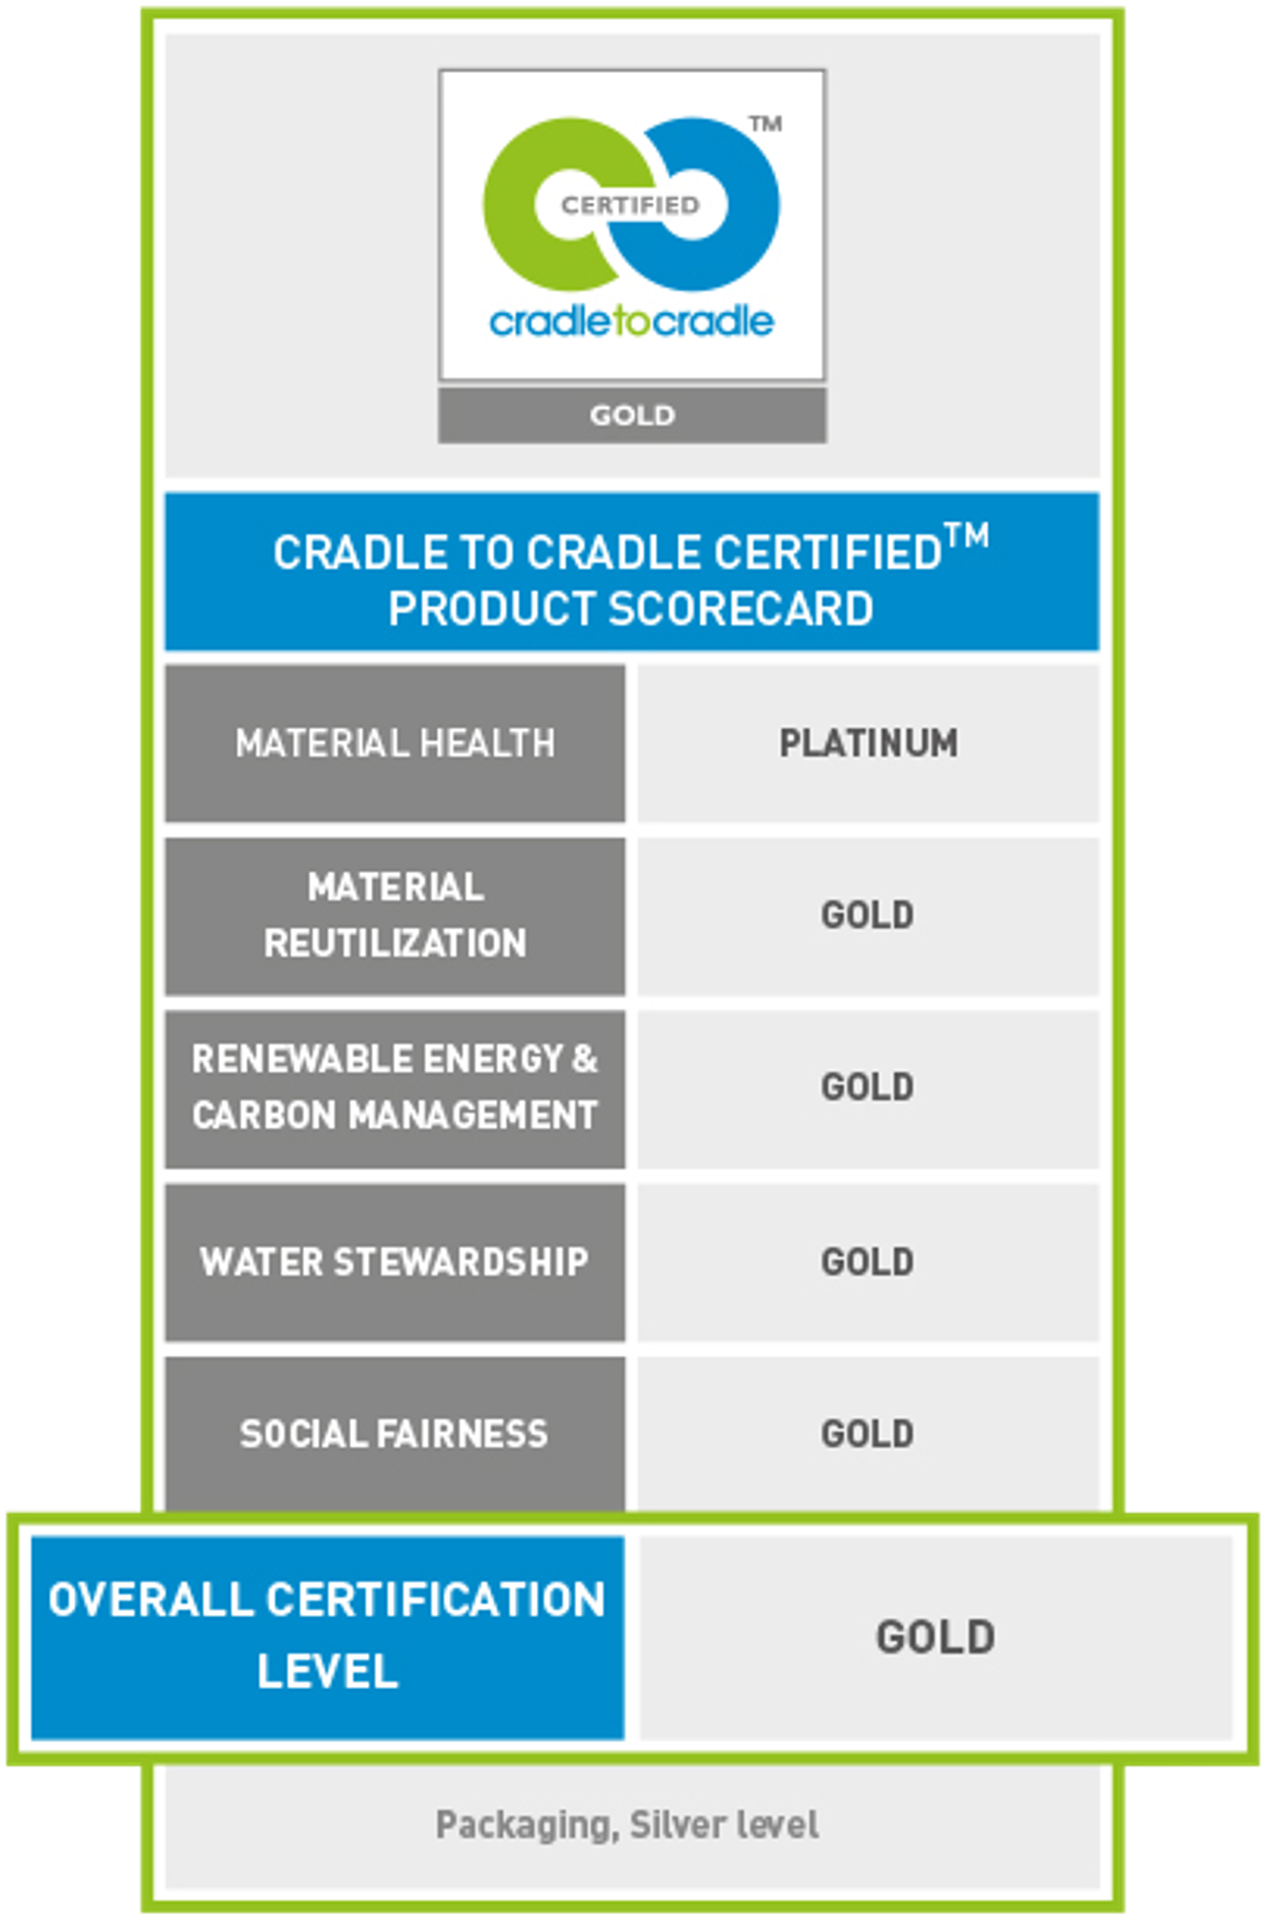 werner mertz professional green care cradle to cradle c2c score card certification globale or